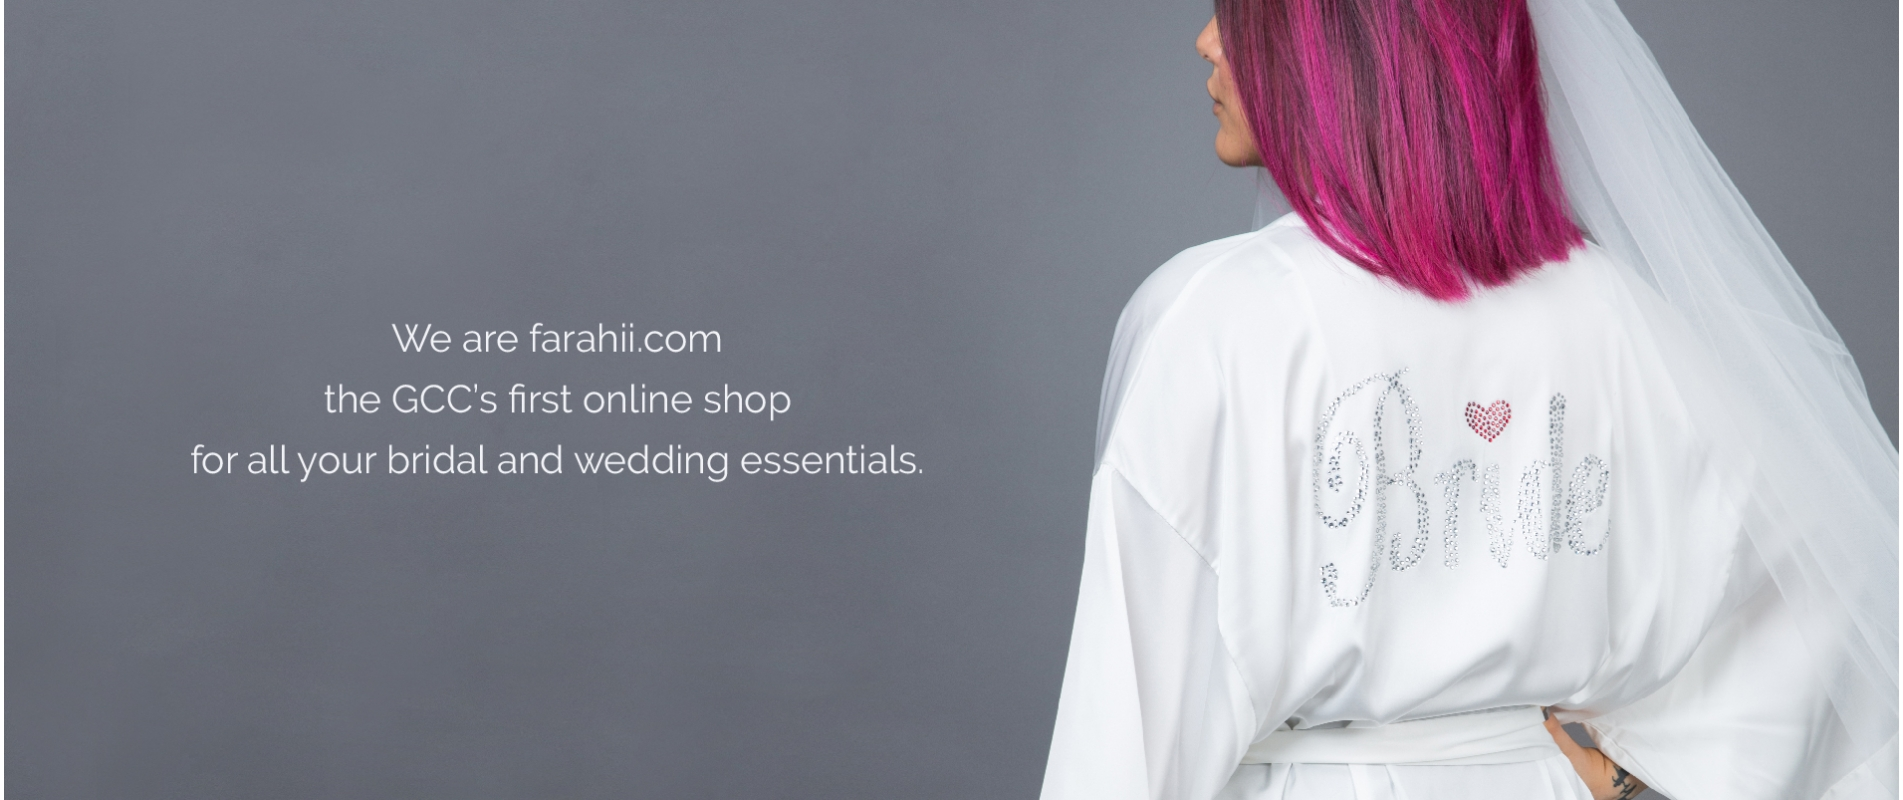 farahii bridal and wedding essentials